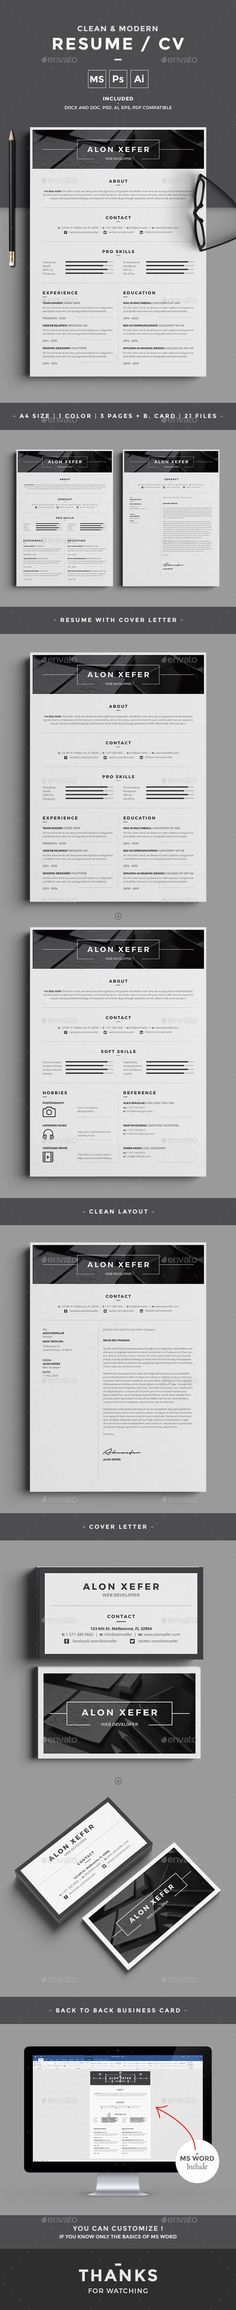 11 best CREATING CV images on Pinterest Creative cv, Stationery - financial engineer sample resume